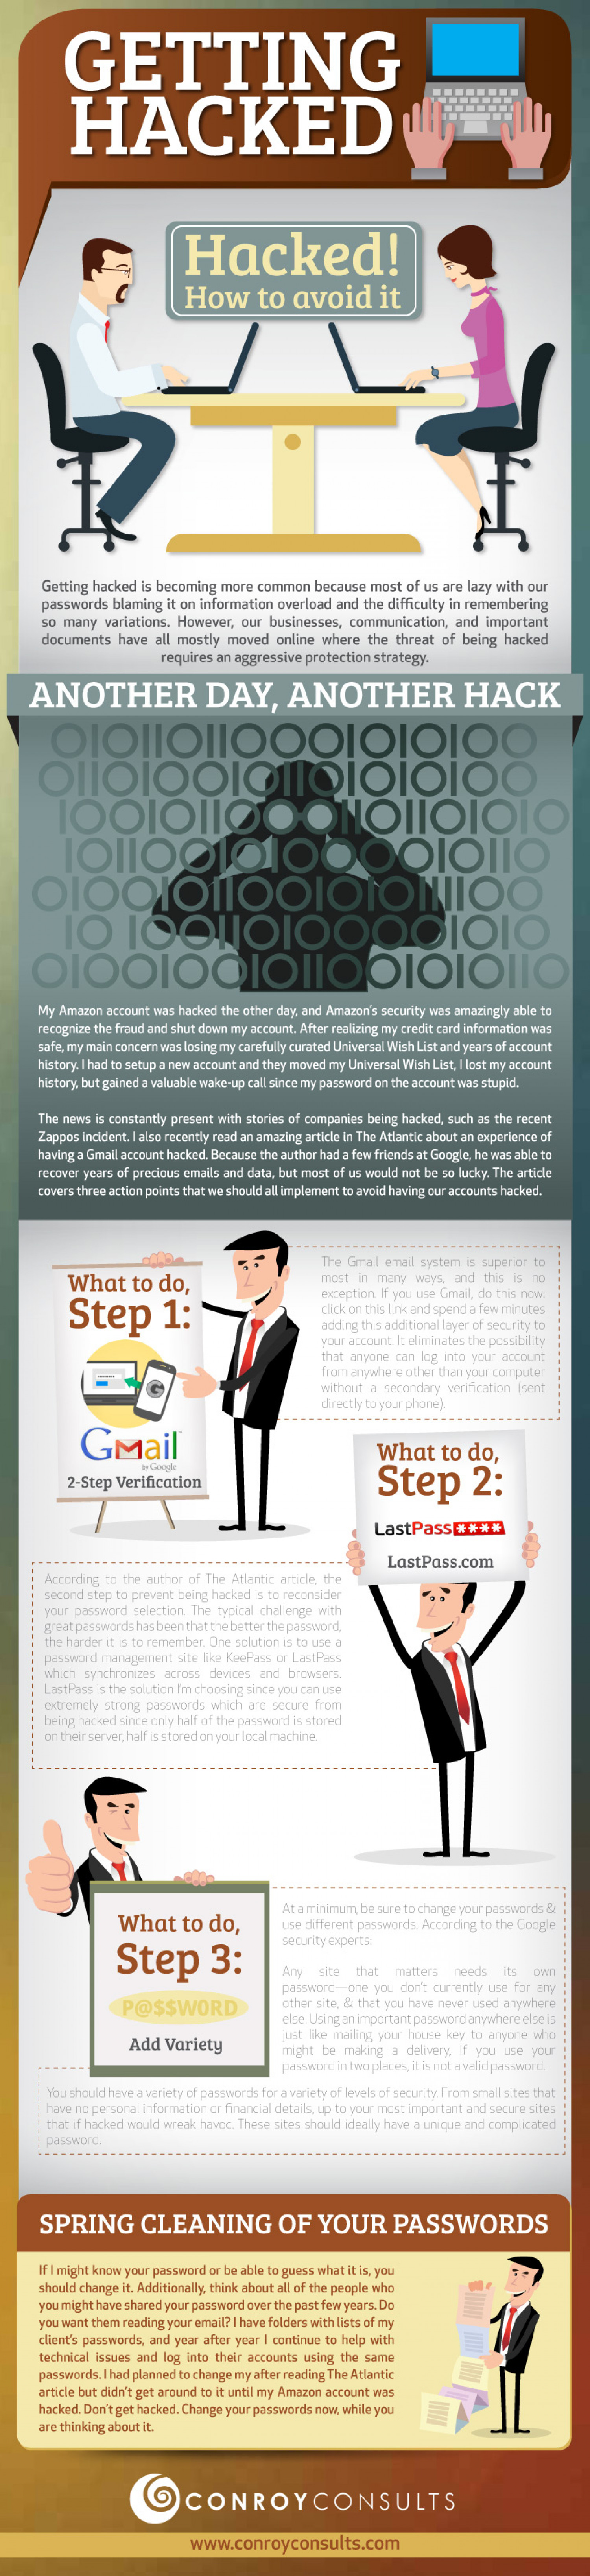 Getting Hacked Infographic by Conroy Consults for Law Firm Website  Infographic